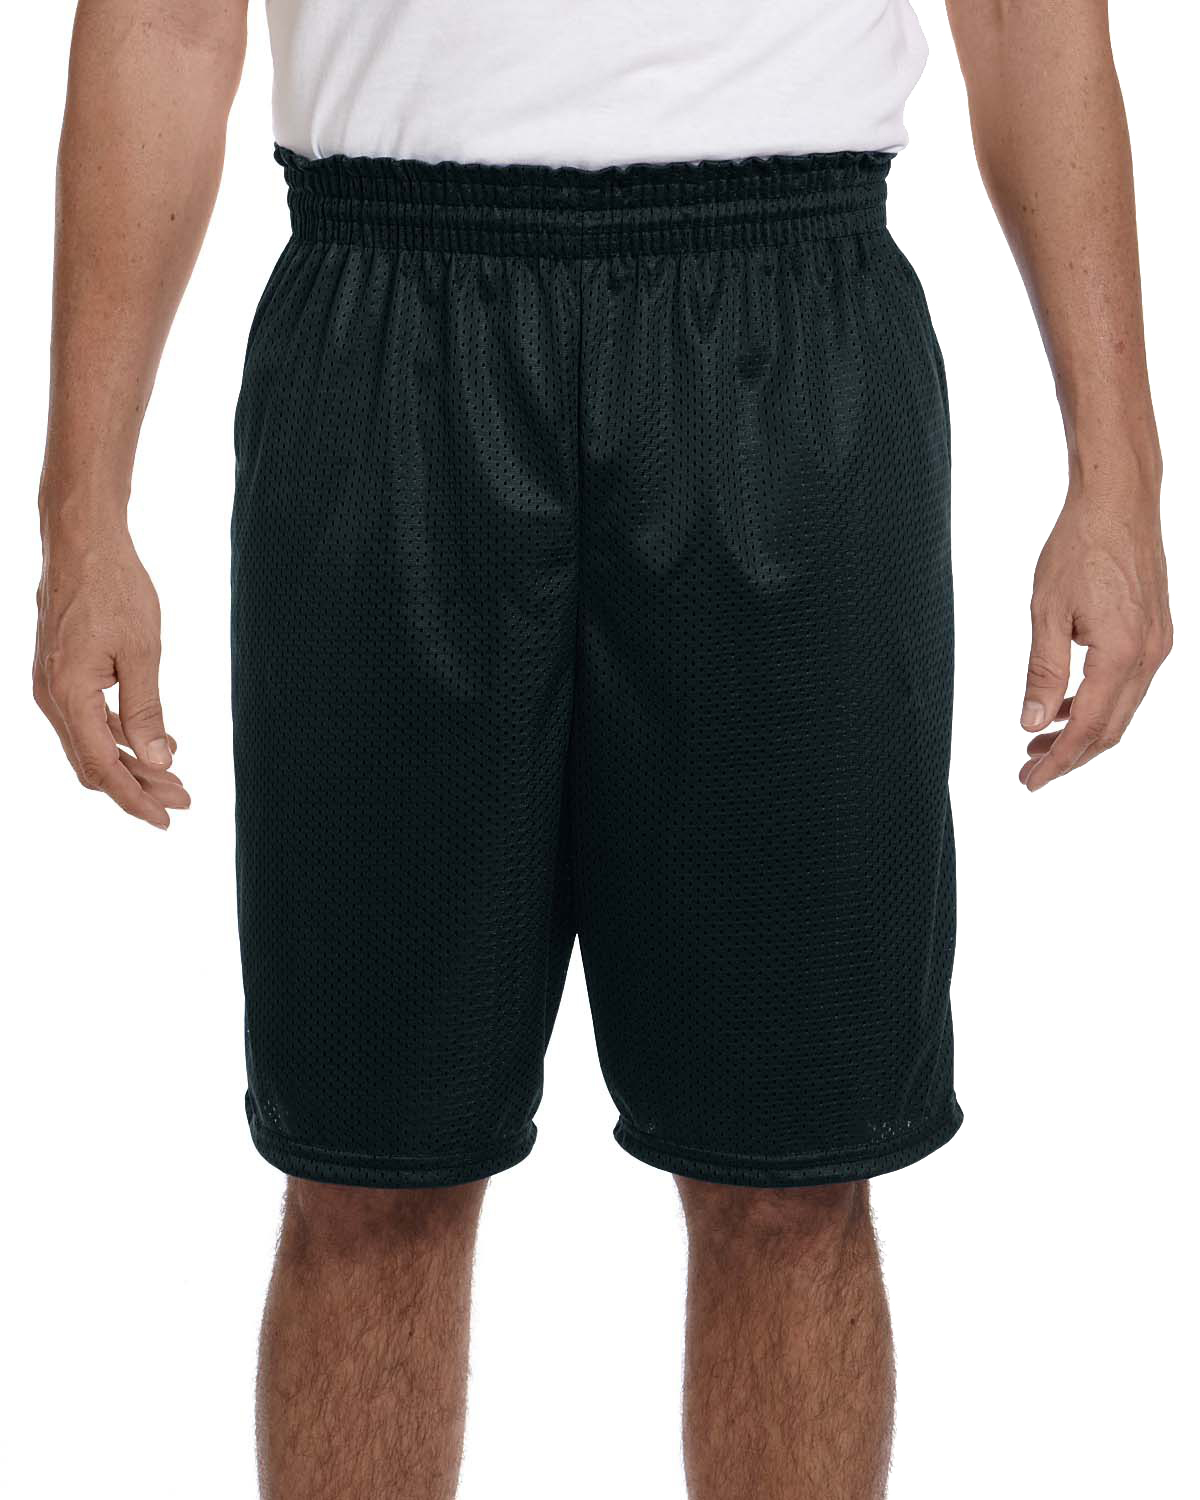 Augusta Sportswear 848 Men's 100% Polyester Tricot Mesh Short Black at GotApparel